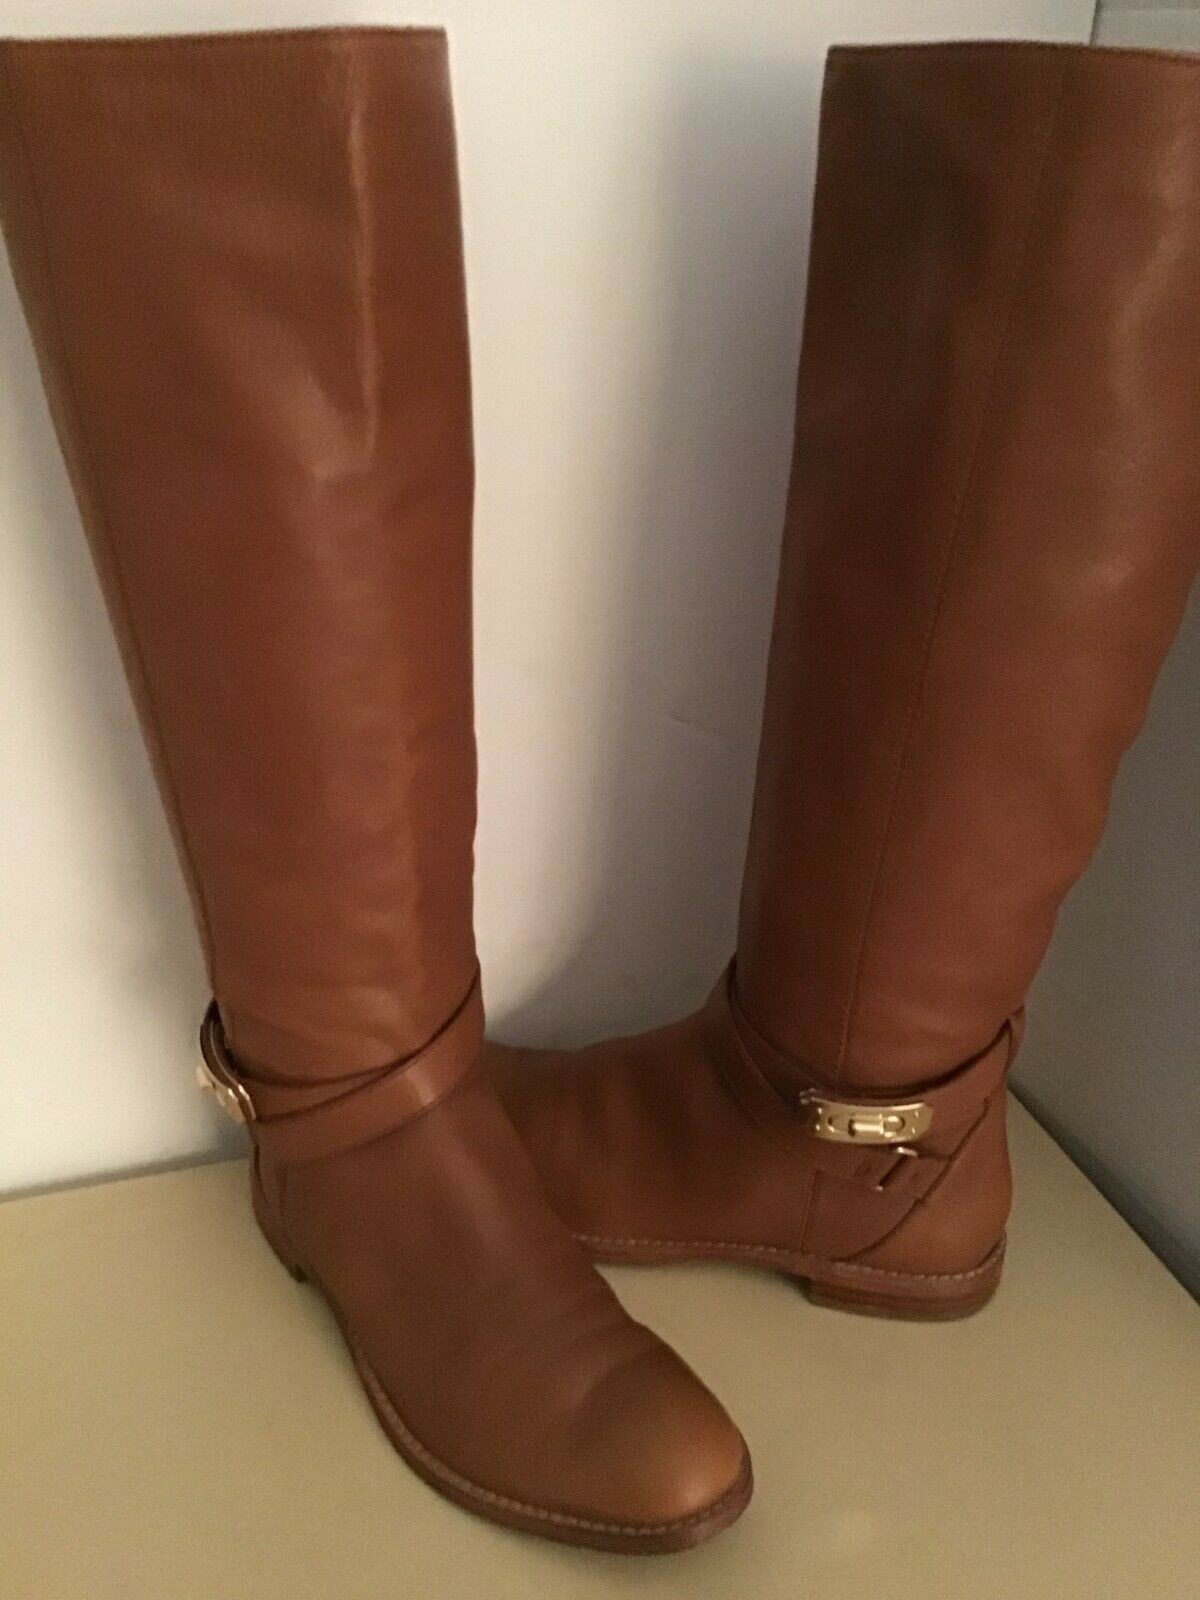 Coach women chestnut brown leather Christine tall knee high boots US size 6.5 me